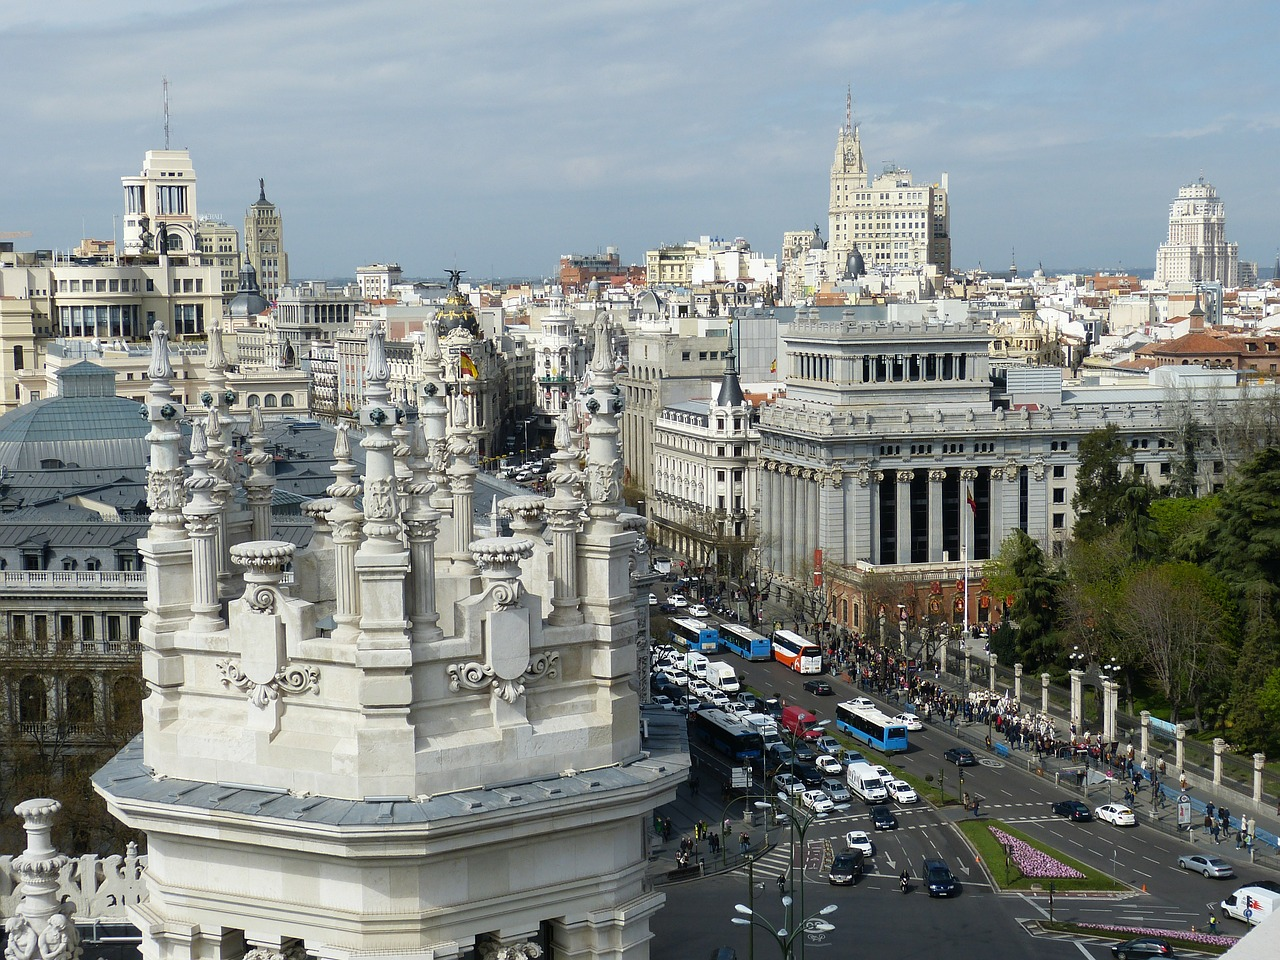 Madrid is a great place to avoid a drizzly autumn ... photo by CC user falco on pixabay